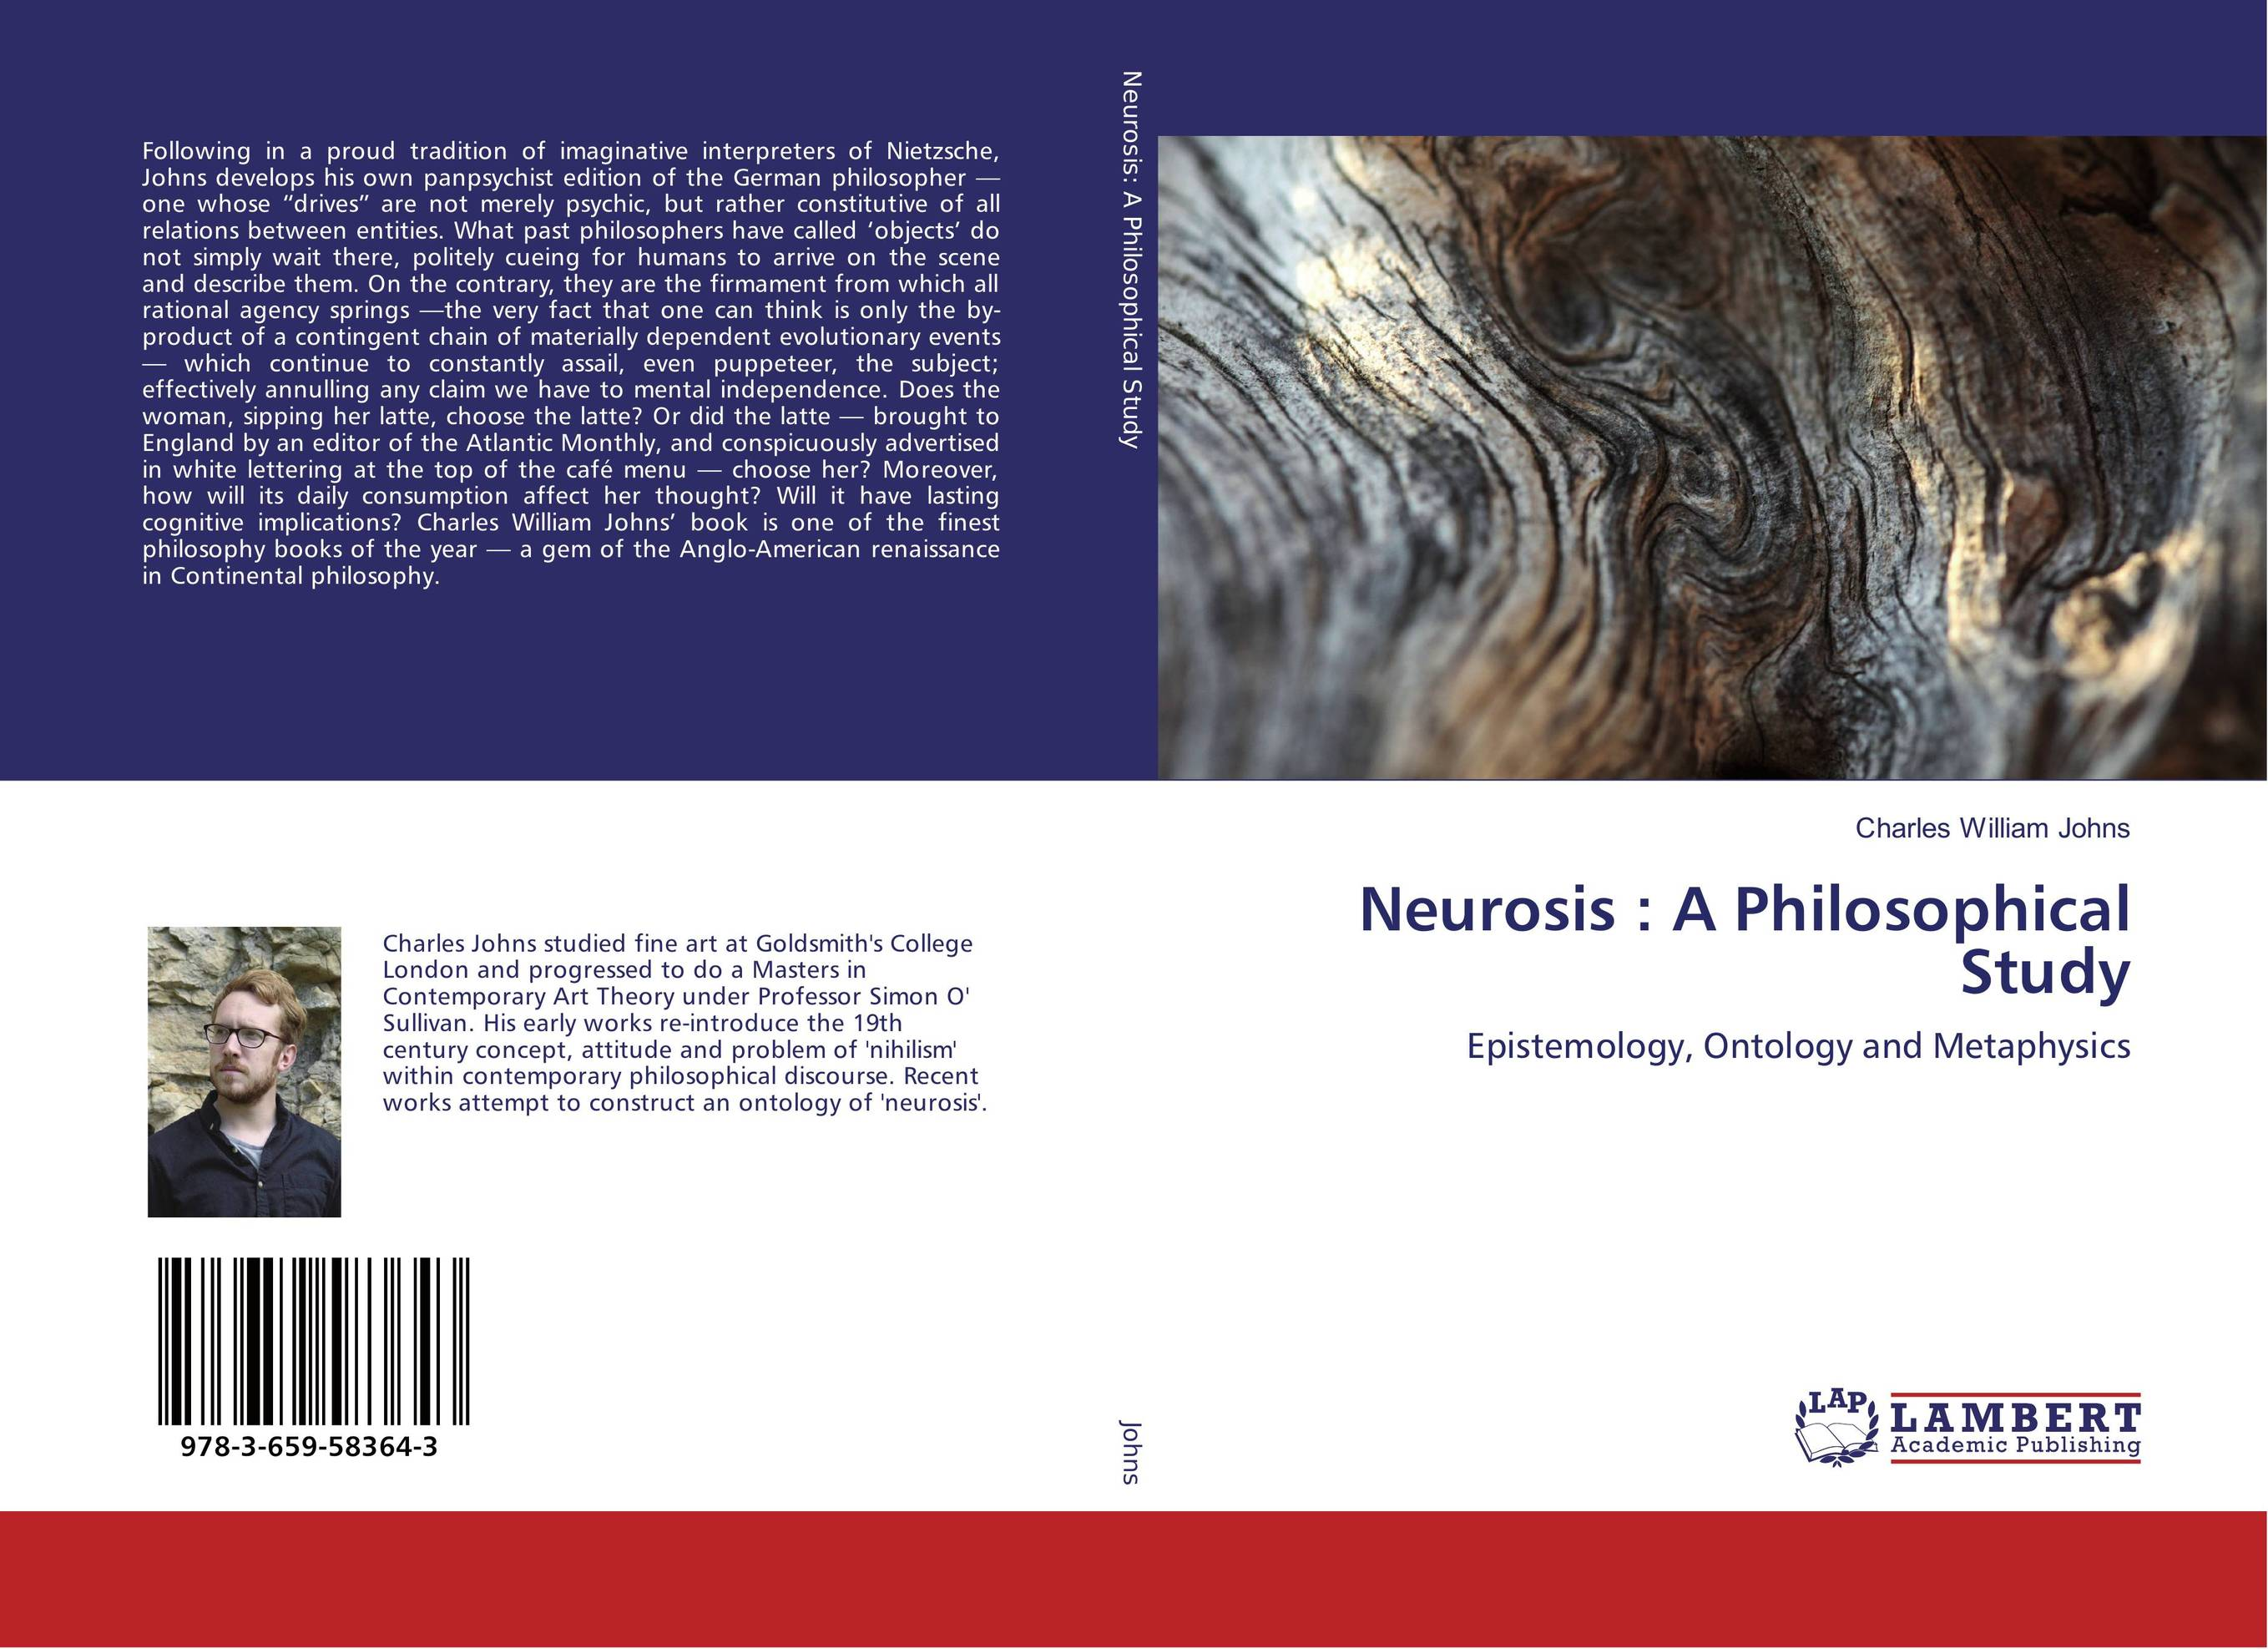 Neurosis : A Philosophical Study